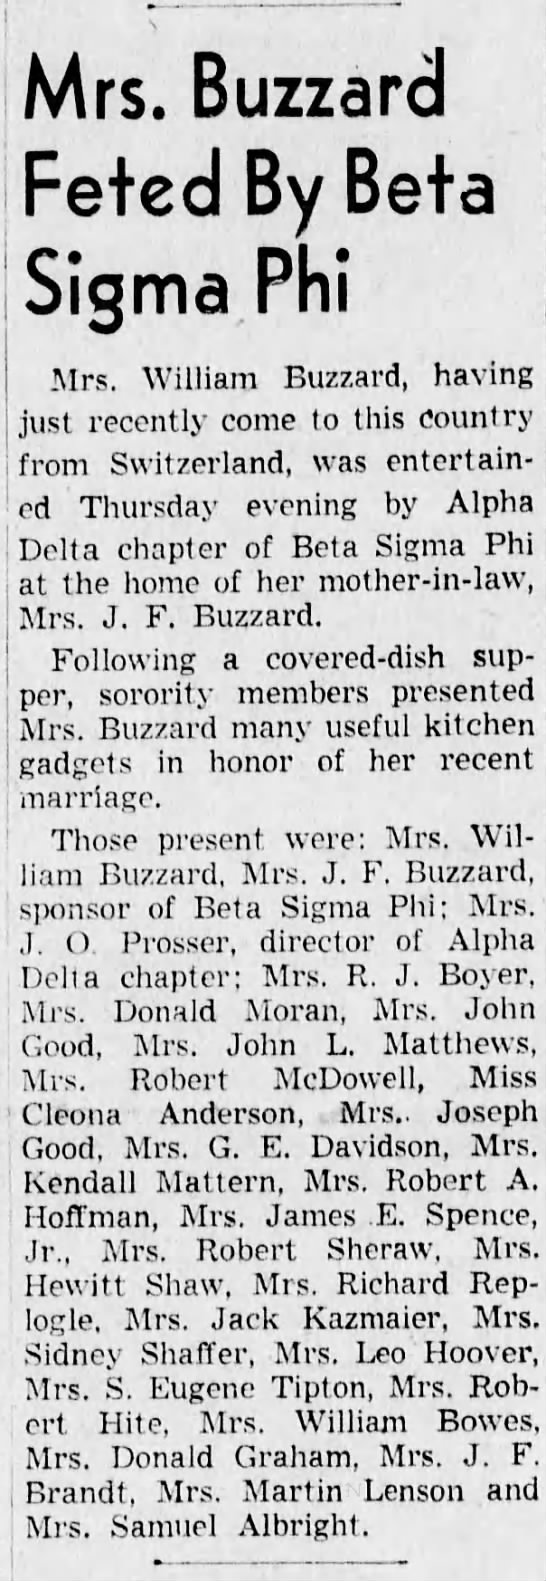 Bettie at Beta Sigma Phi meeting-17 February 1948 -